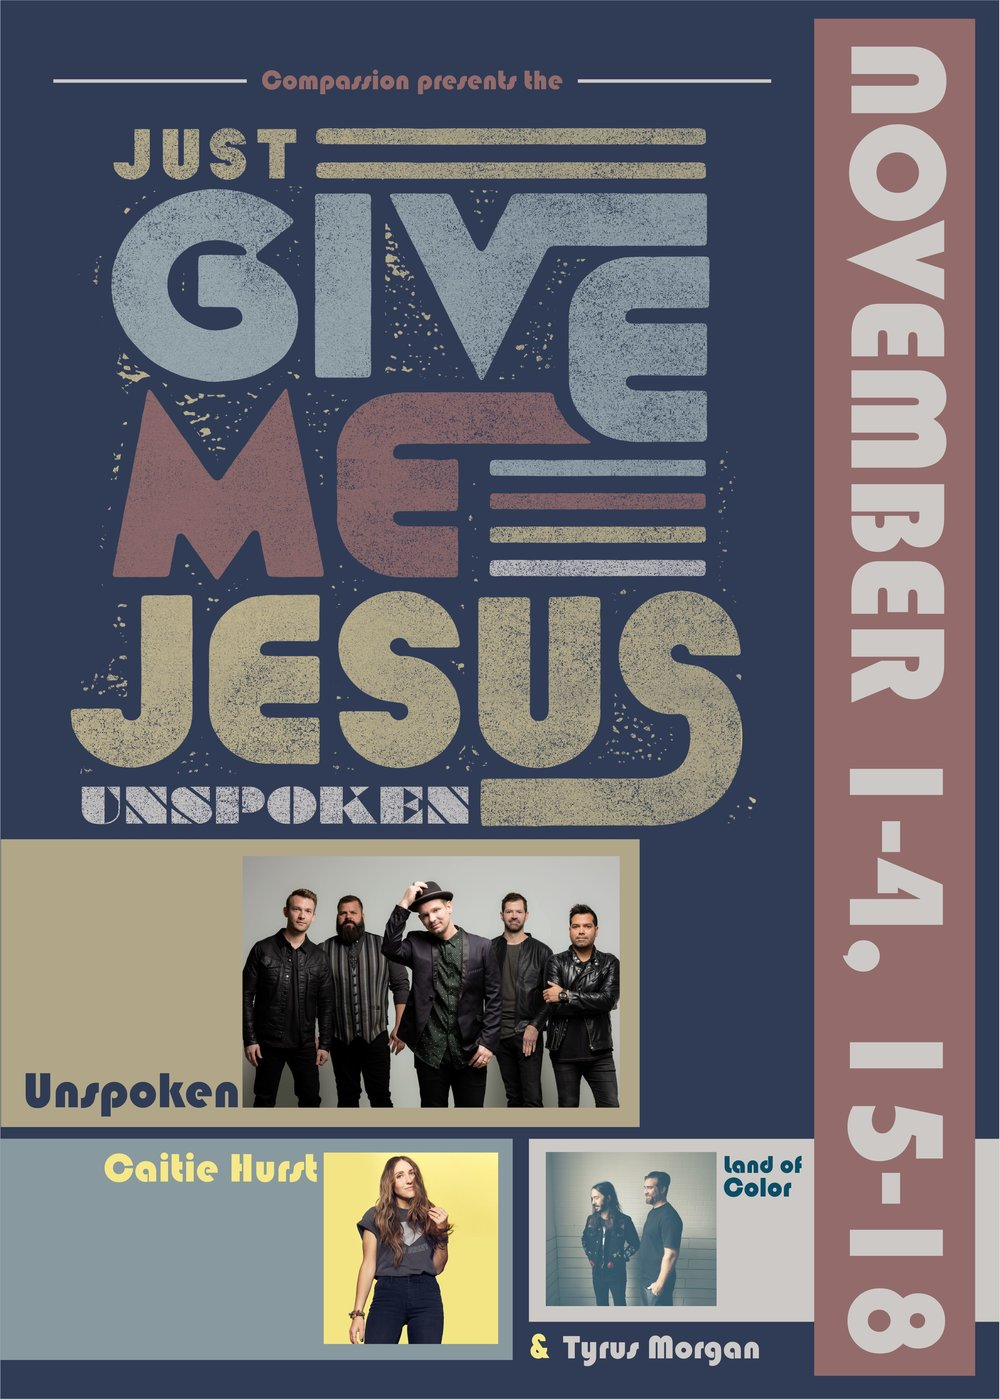 Just Give Me Jesus Tour jul 18.jpg